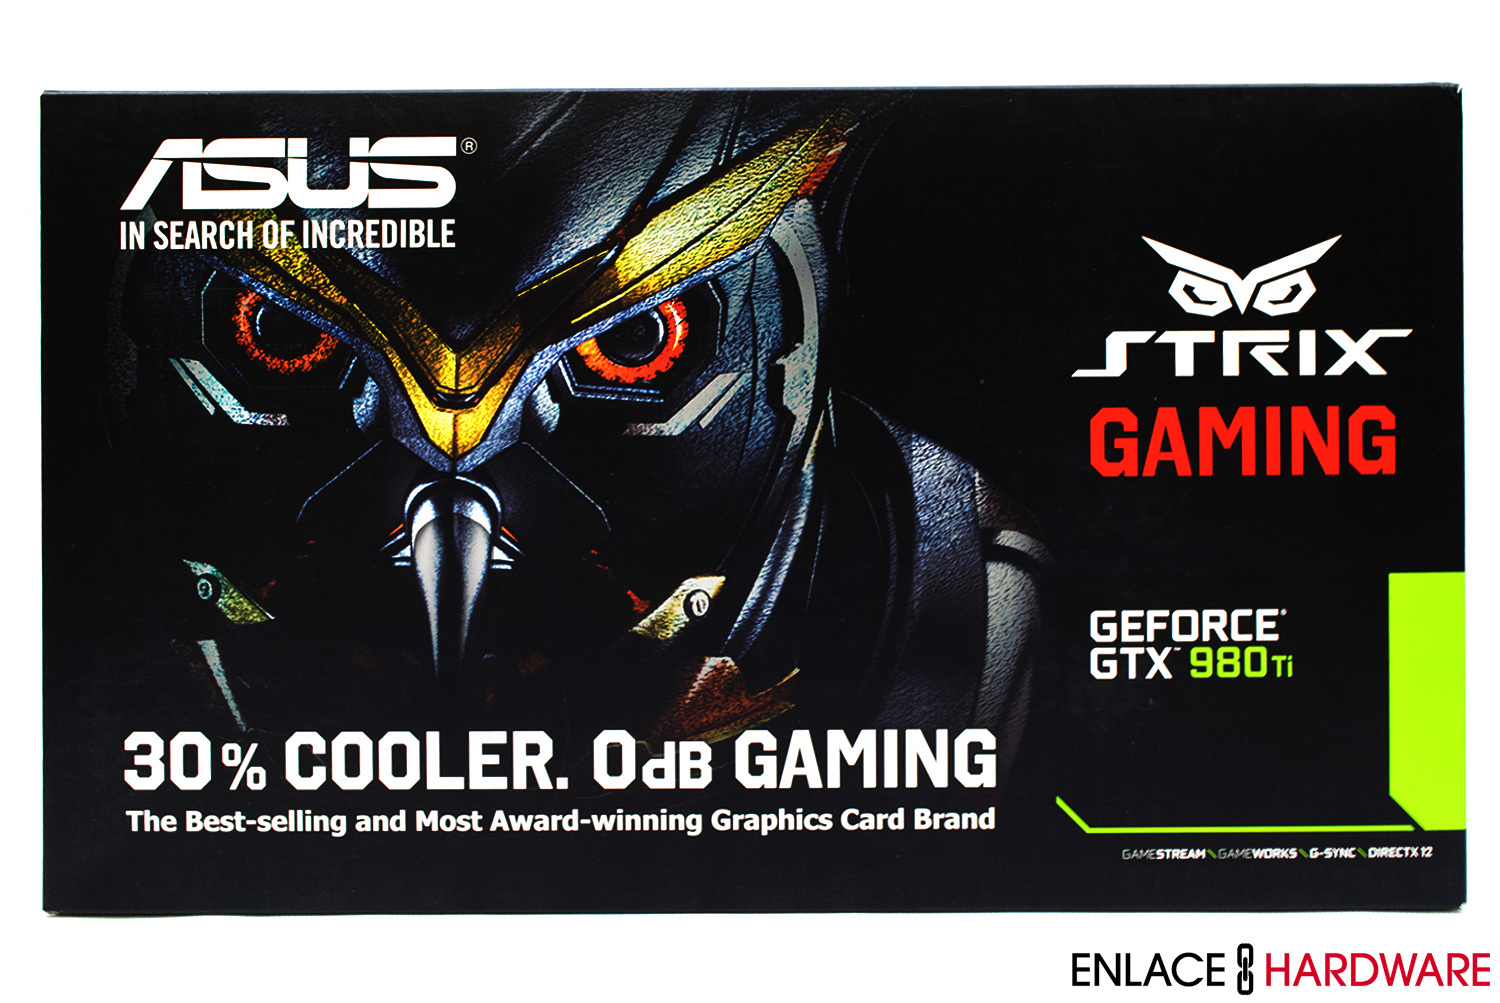 ASUS-Strix-GeForce-GTX-980-Ti-Review-2